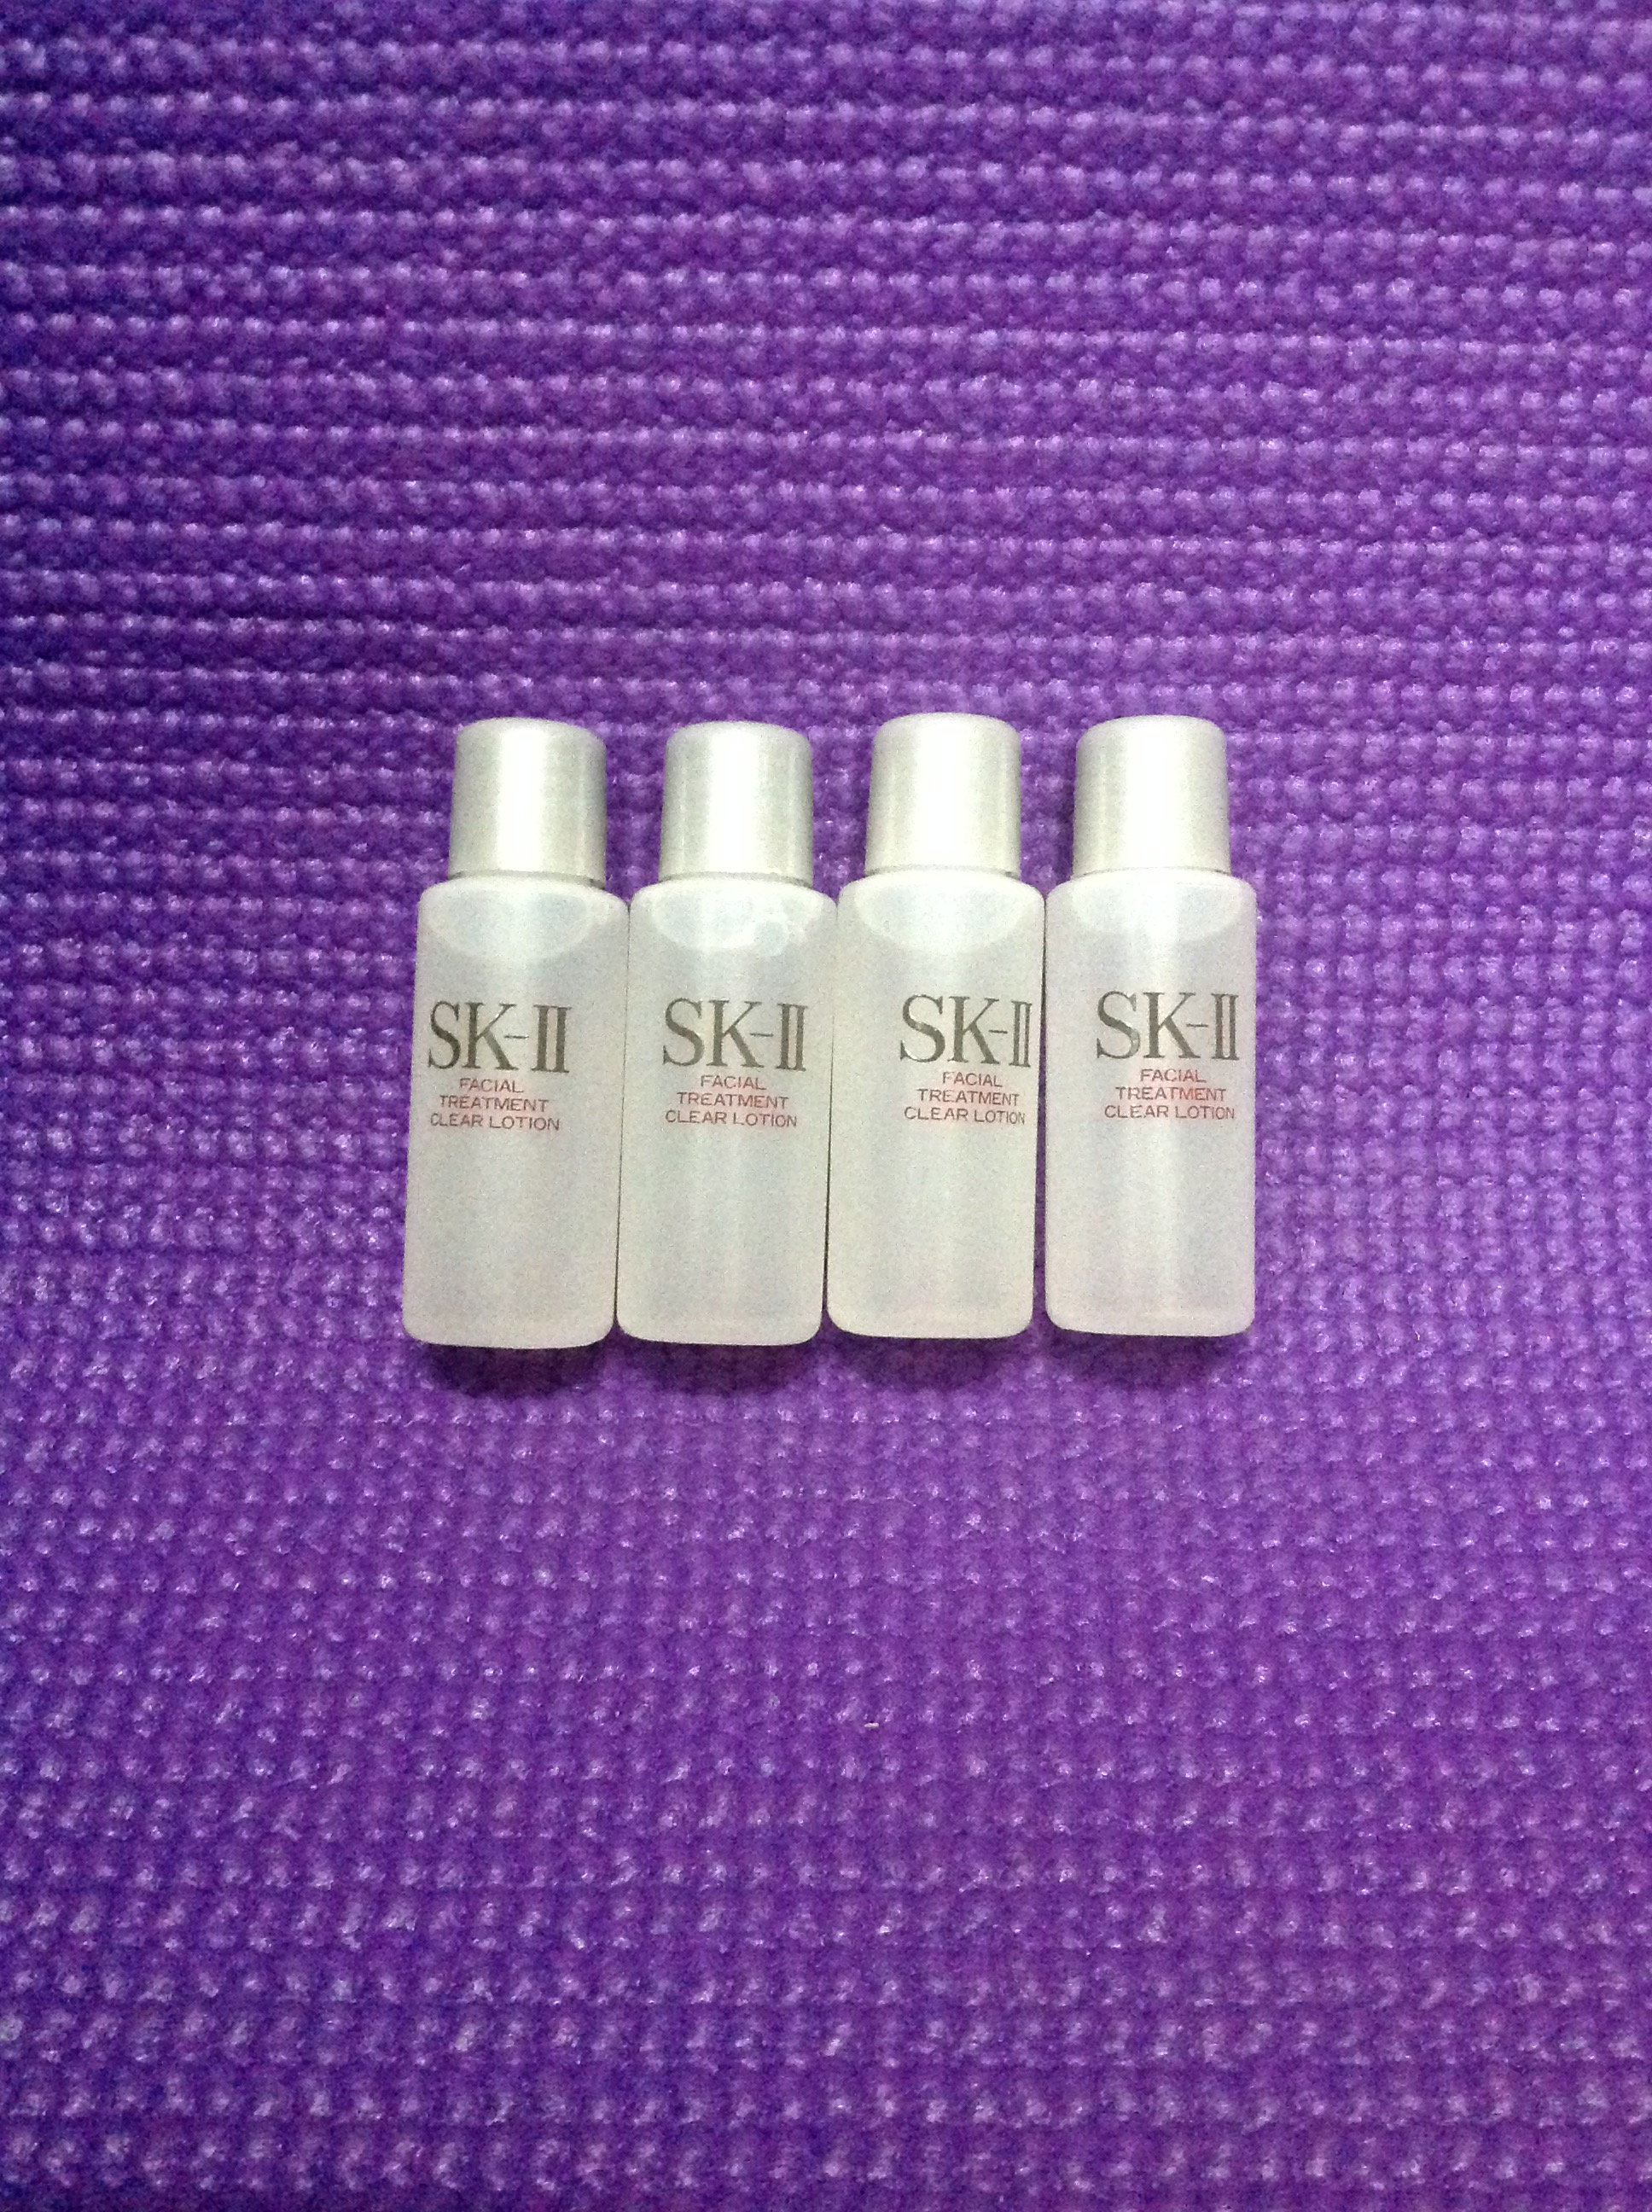 Sell Sk Ii Essence Lotion Facial Treatment Clear 10 Ml 3 280 4